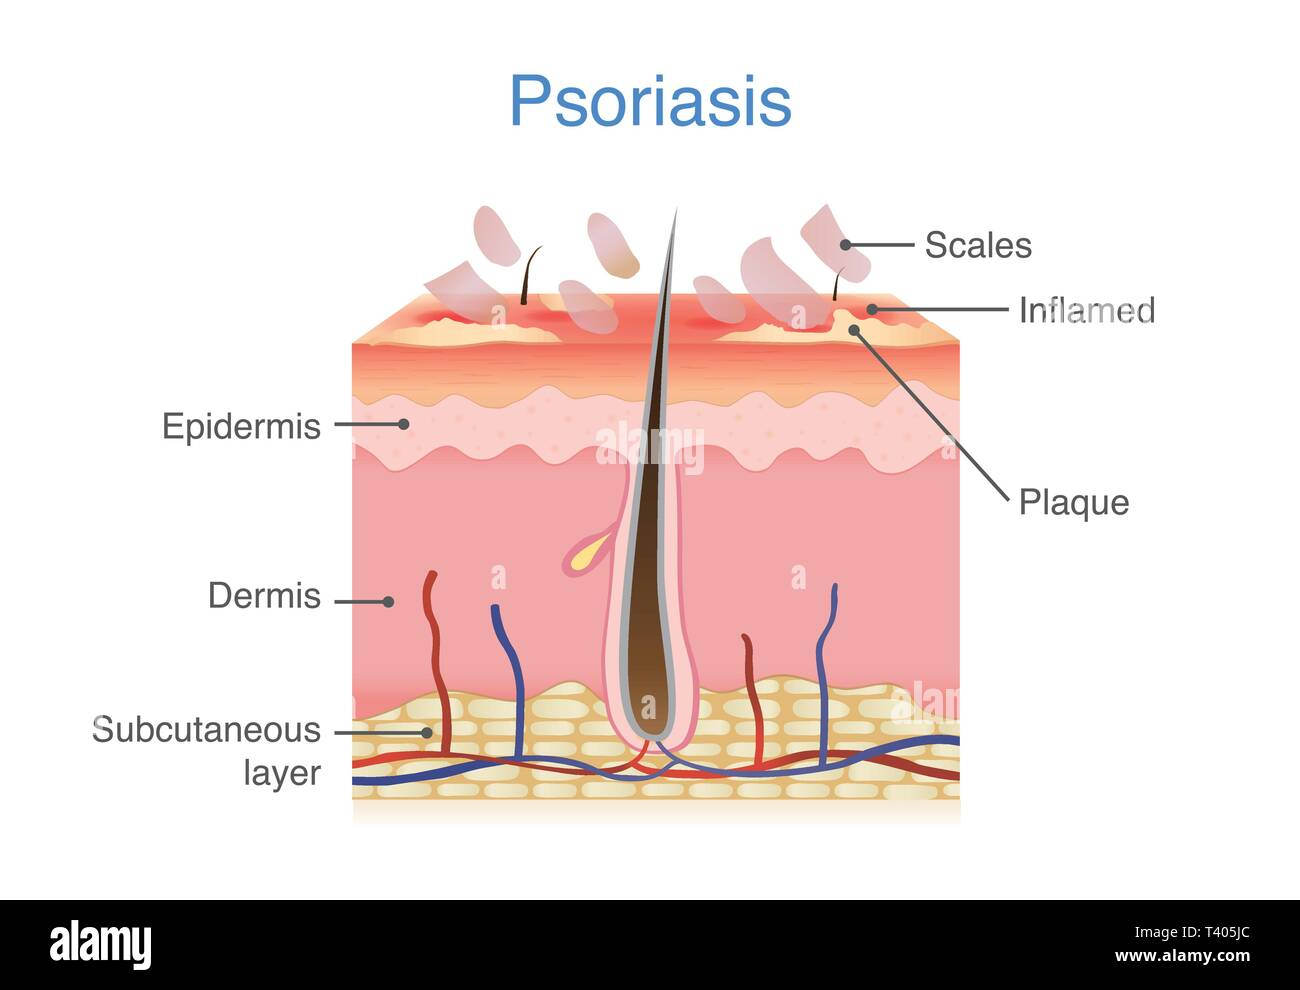 Human skin layer when plaque psoriasis signs and symptoms appear. - Stock Image